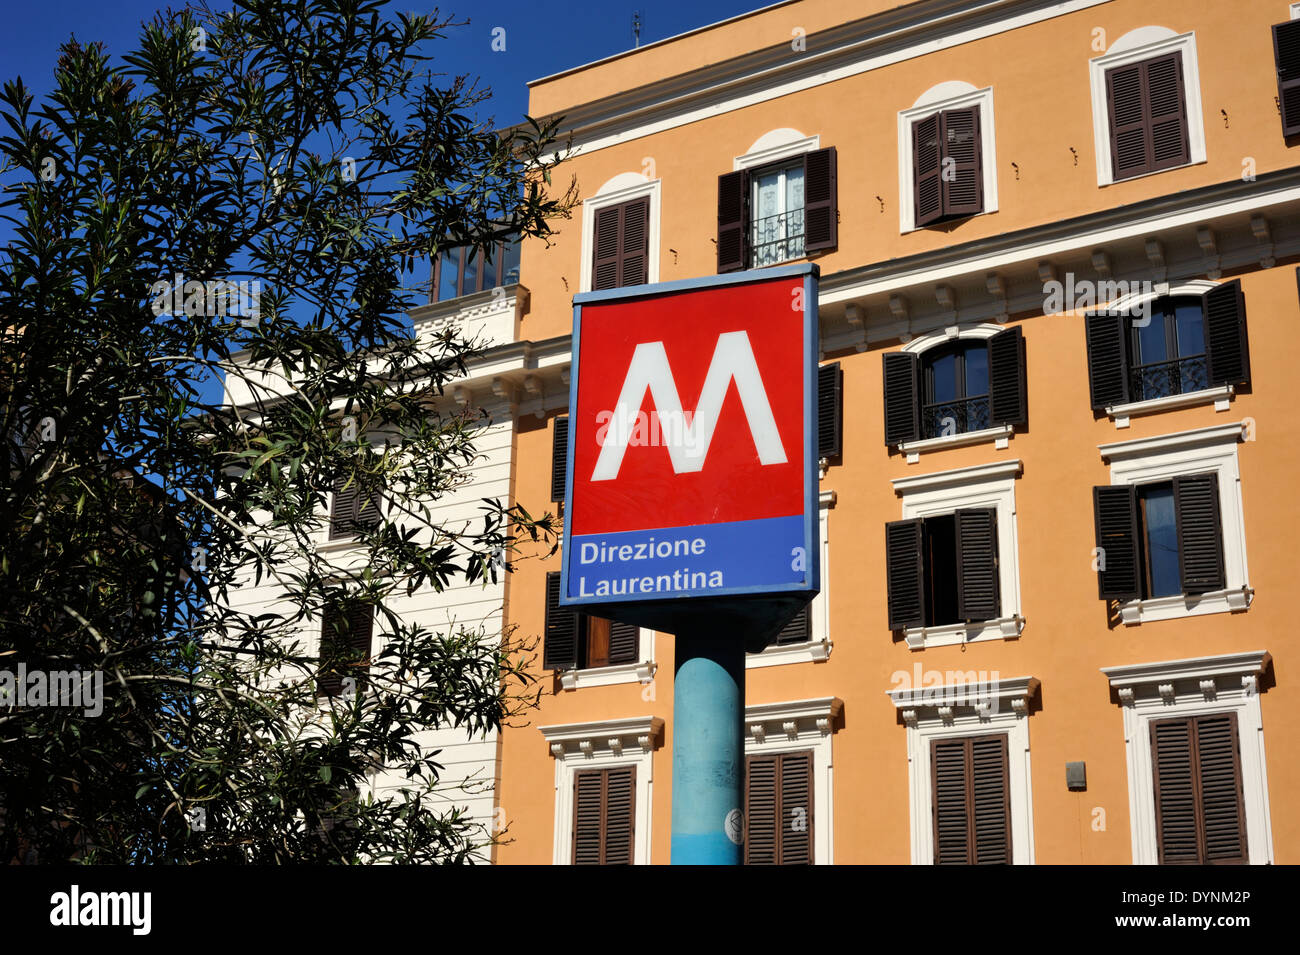 italy, rome, via Cavour, metro sign - Stock Image